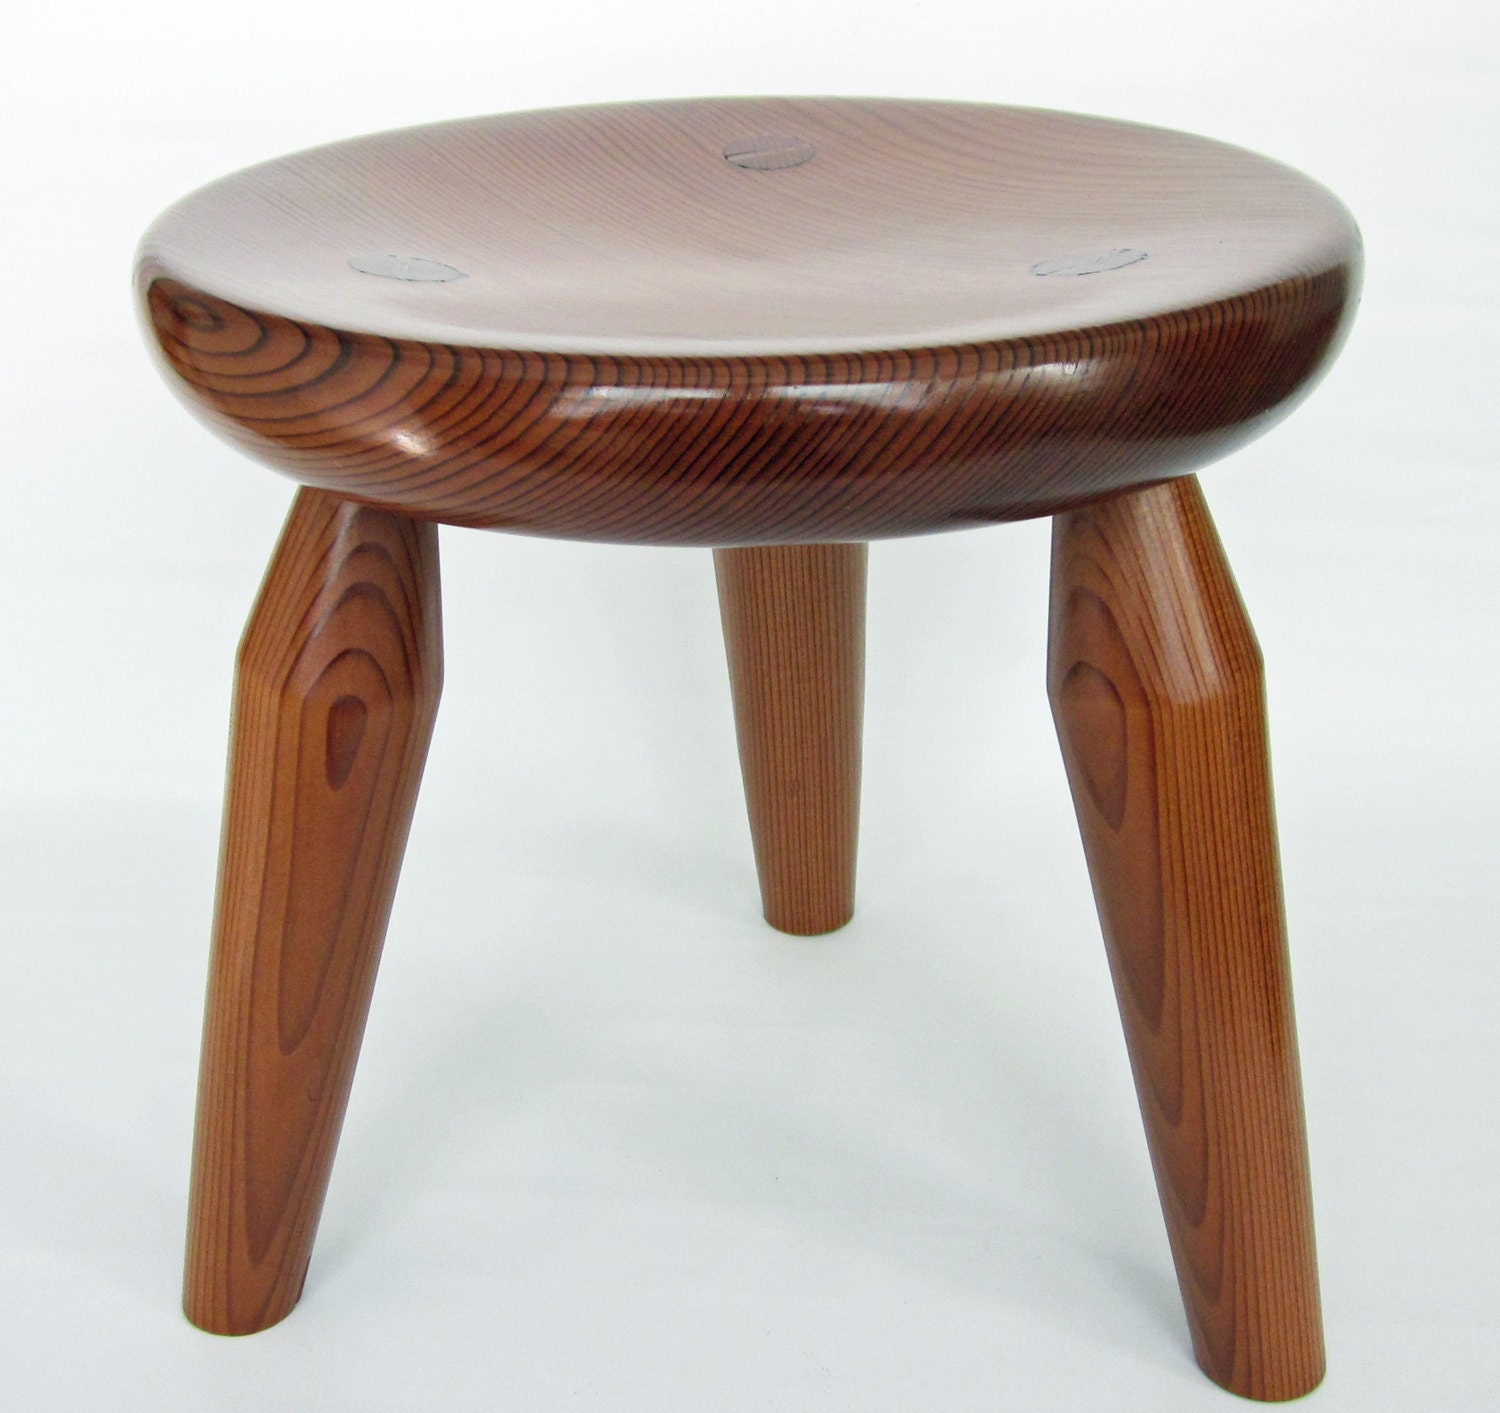 Three Legged Milking Stool Made From By Luckysustainables